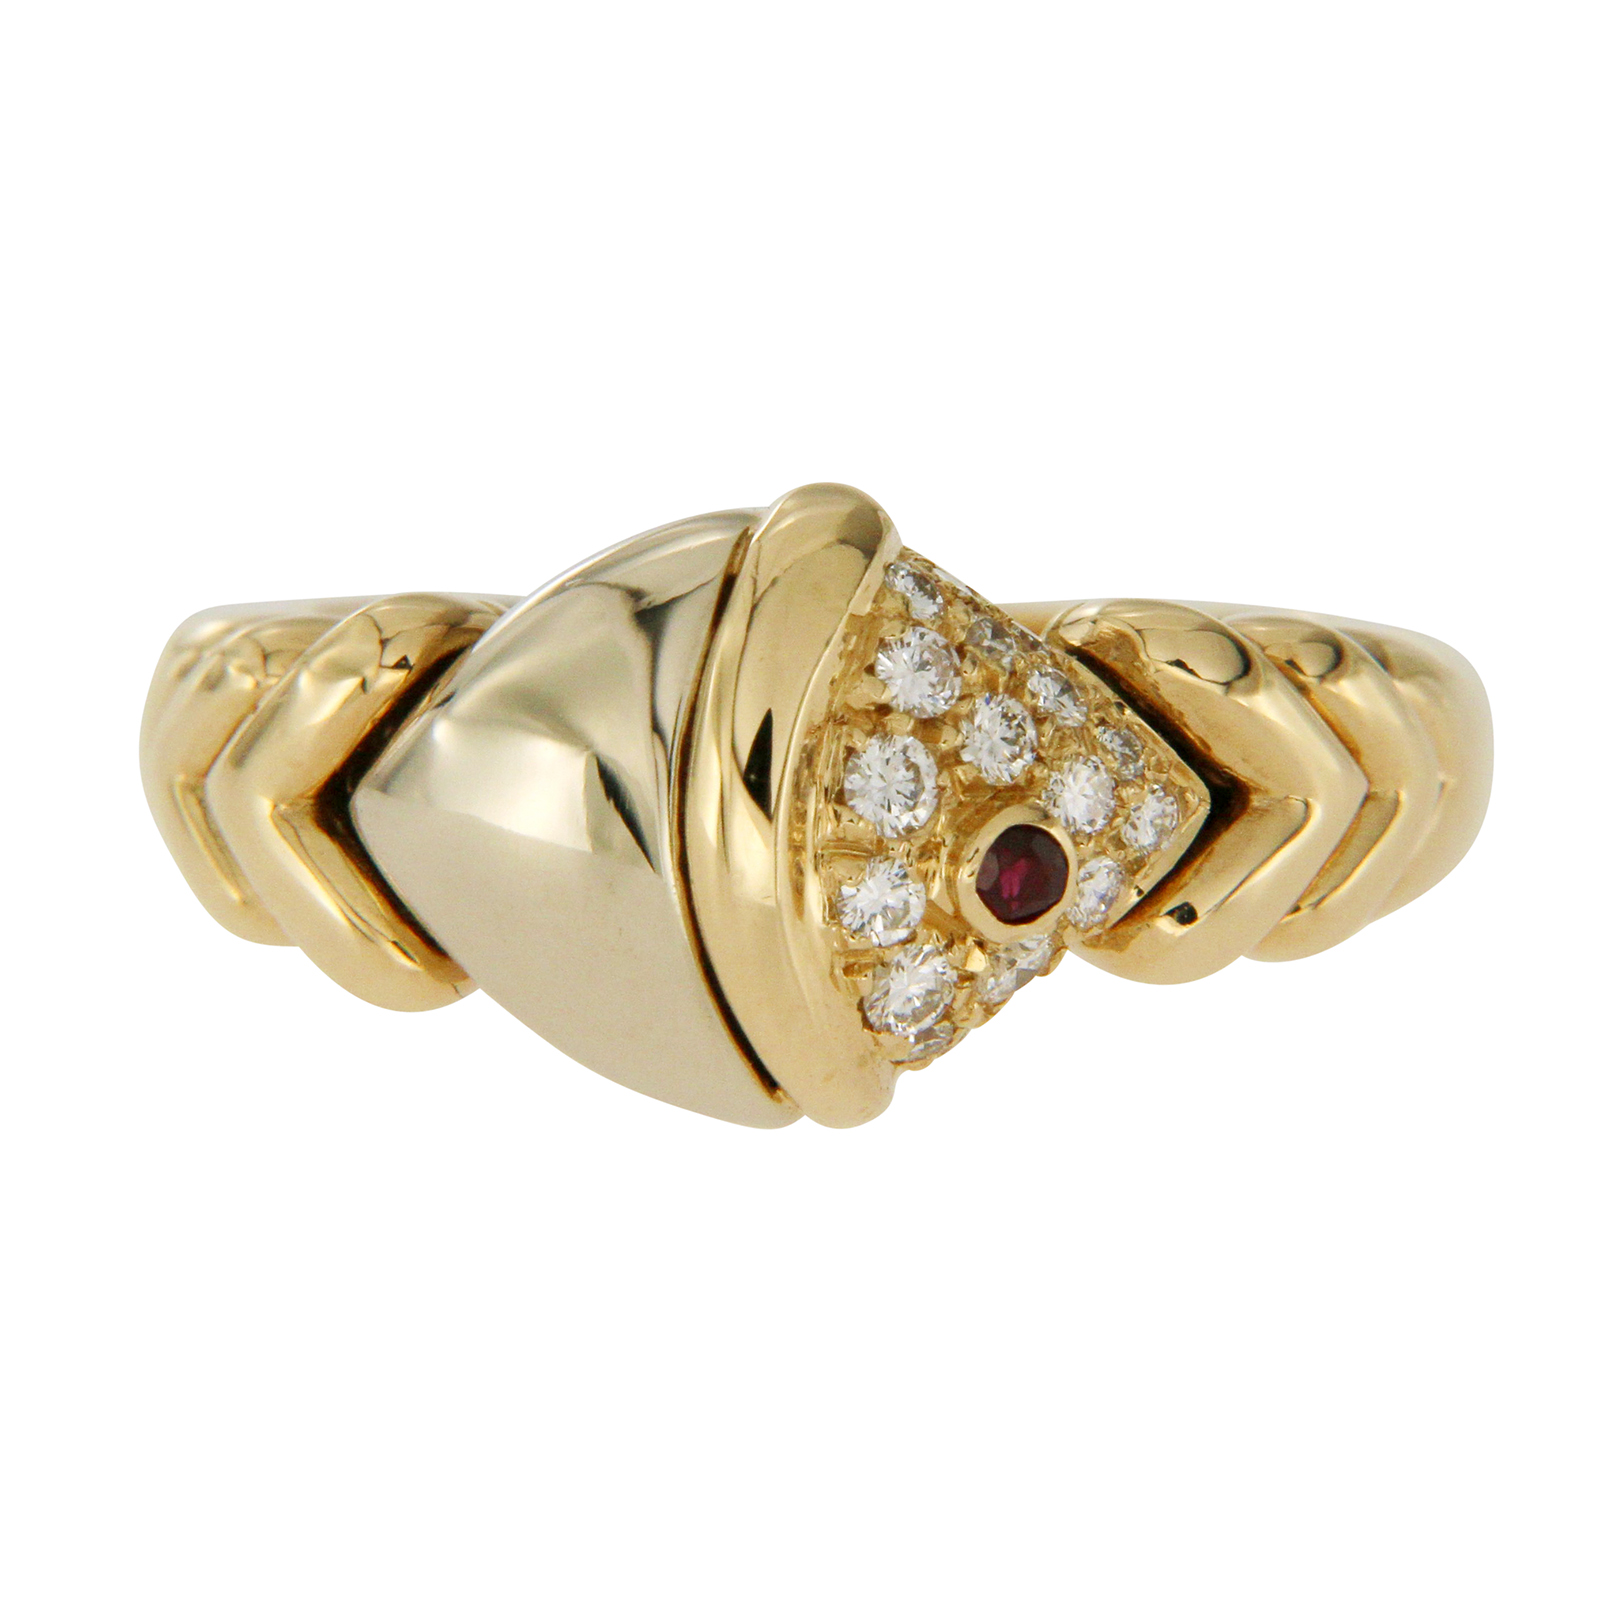 "Image of ""Bvlgari Diamond & Ruby 18K Two Tone Gold Fish Ring Size 5.75"""